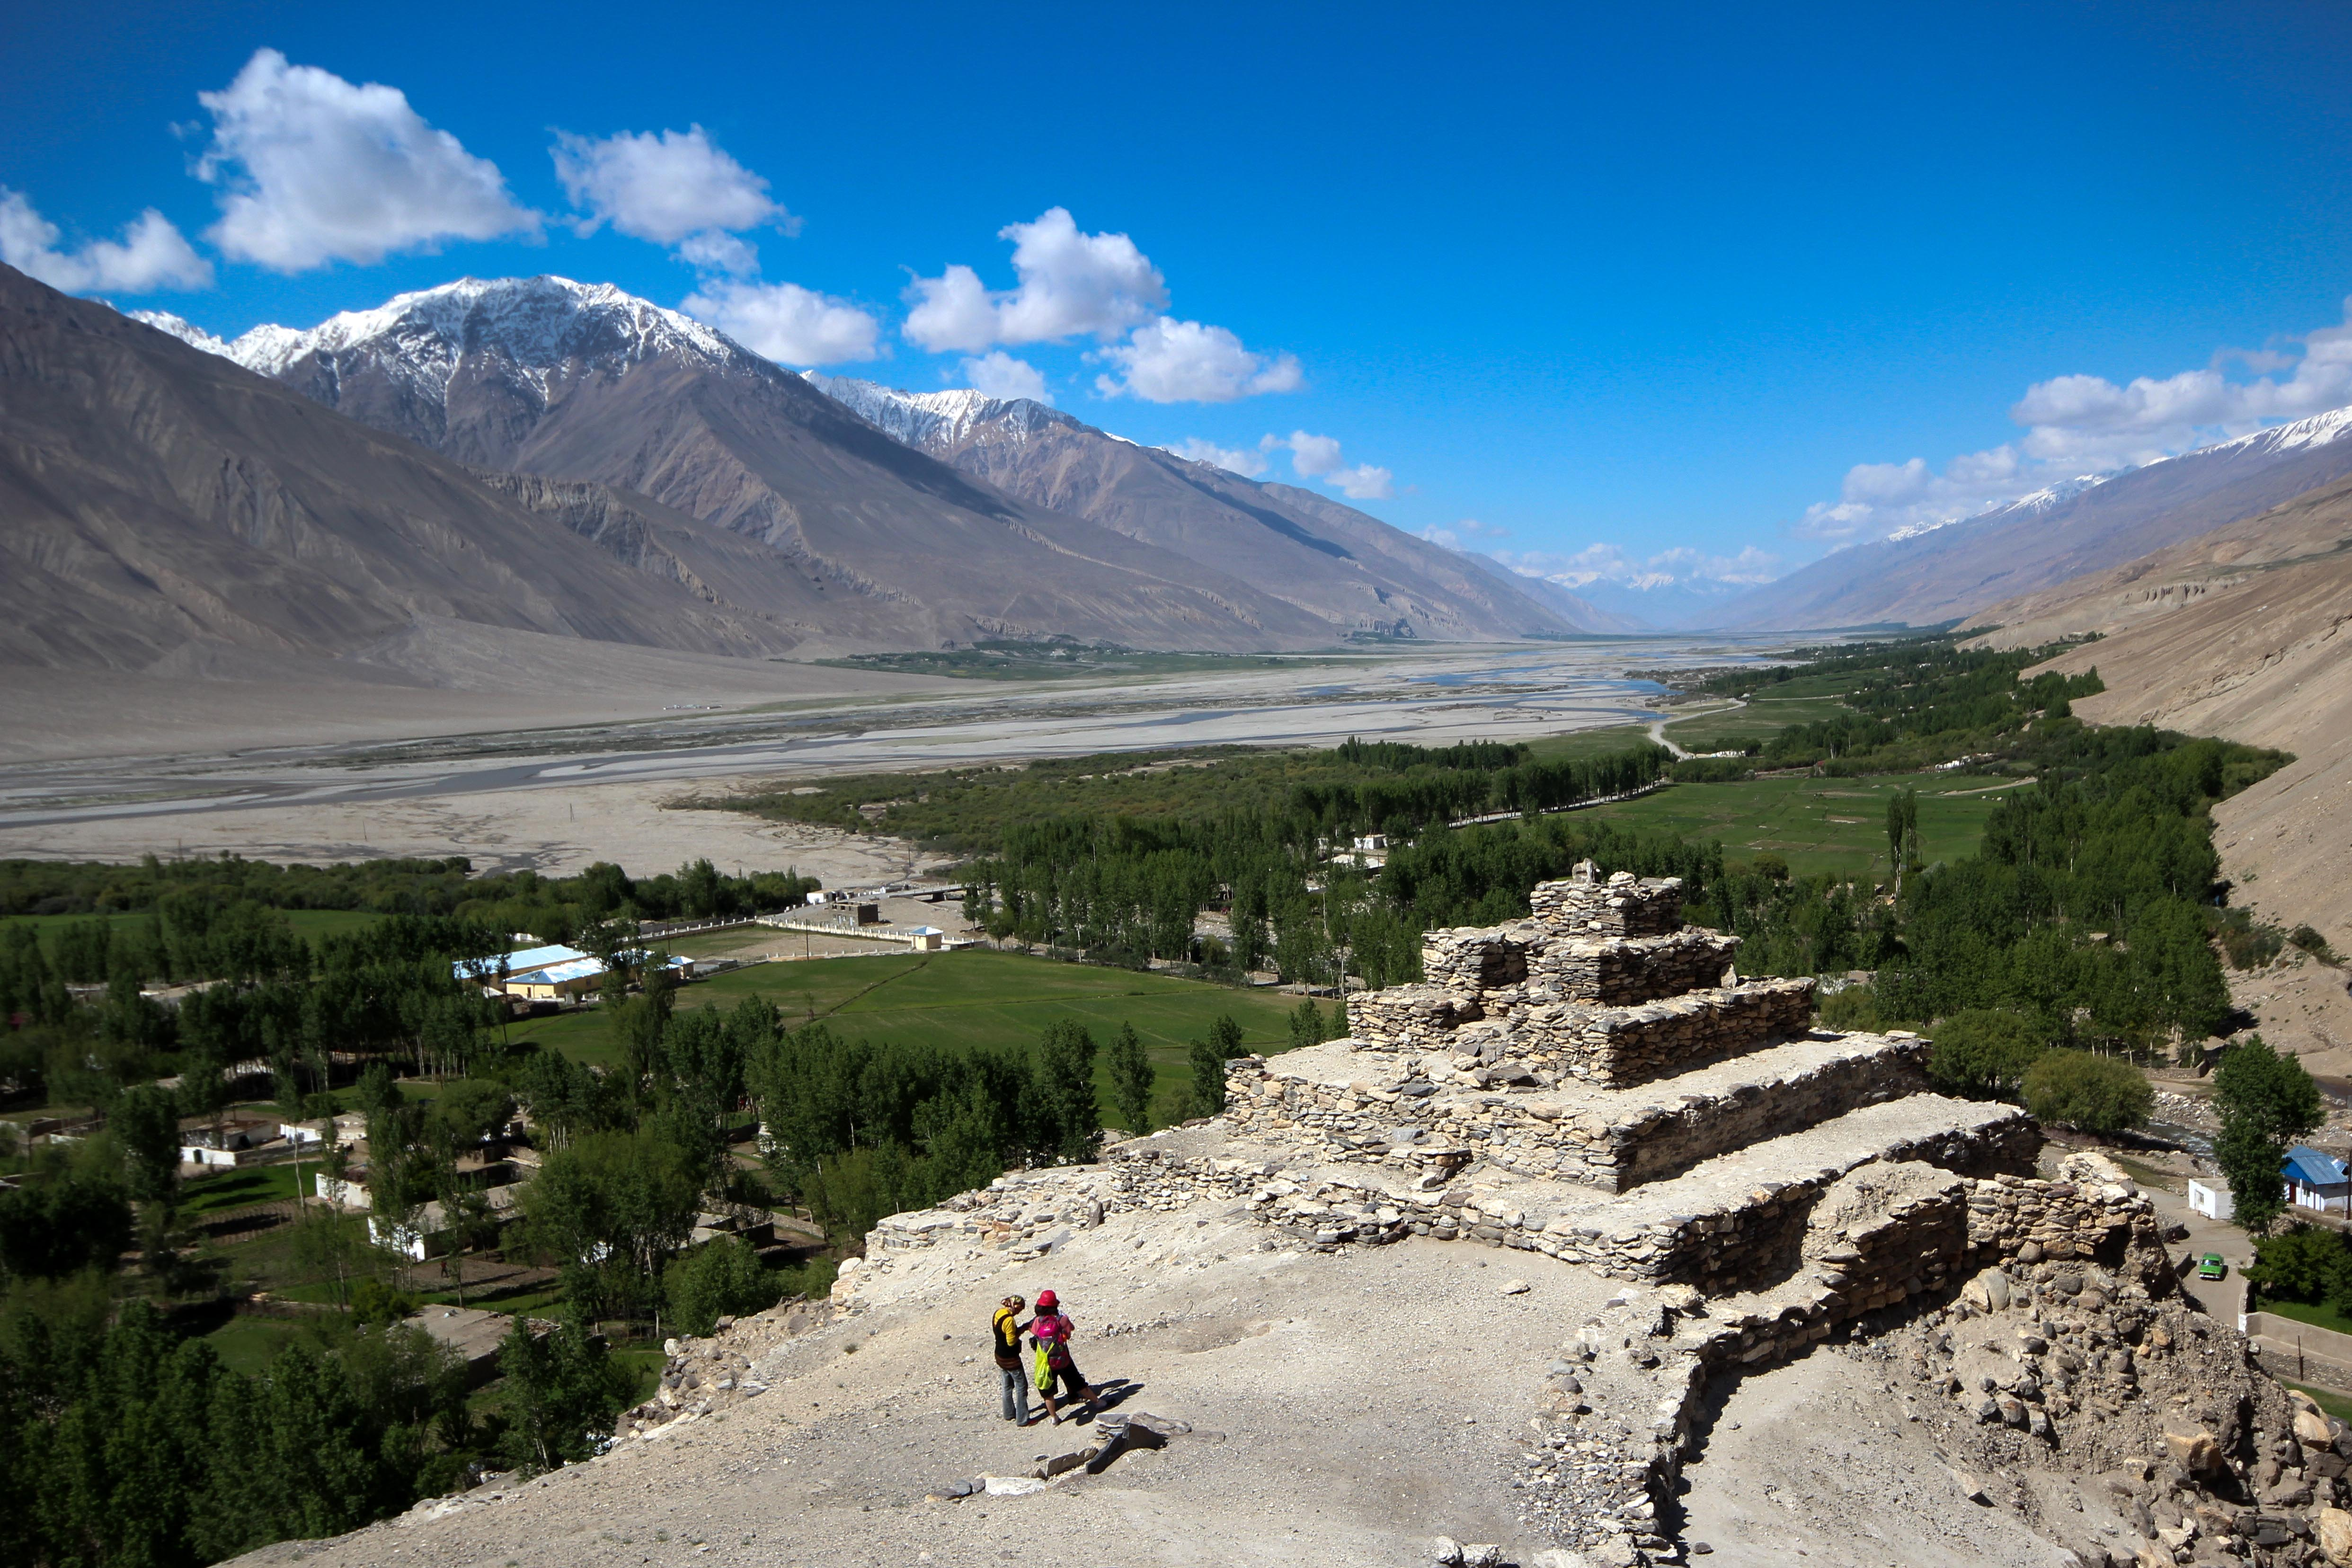 Wakhan Corridor Afghanistan adventure playground for trekking and climbing